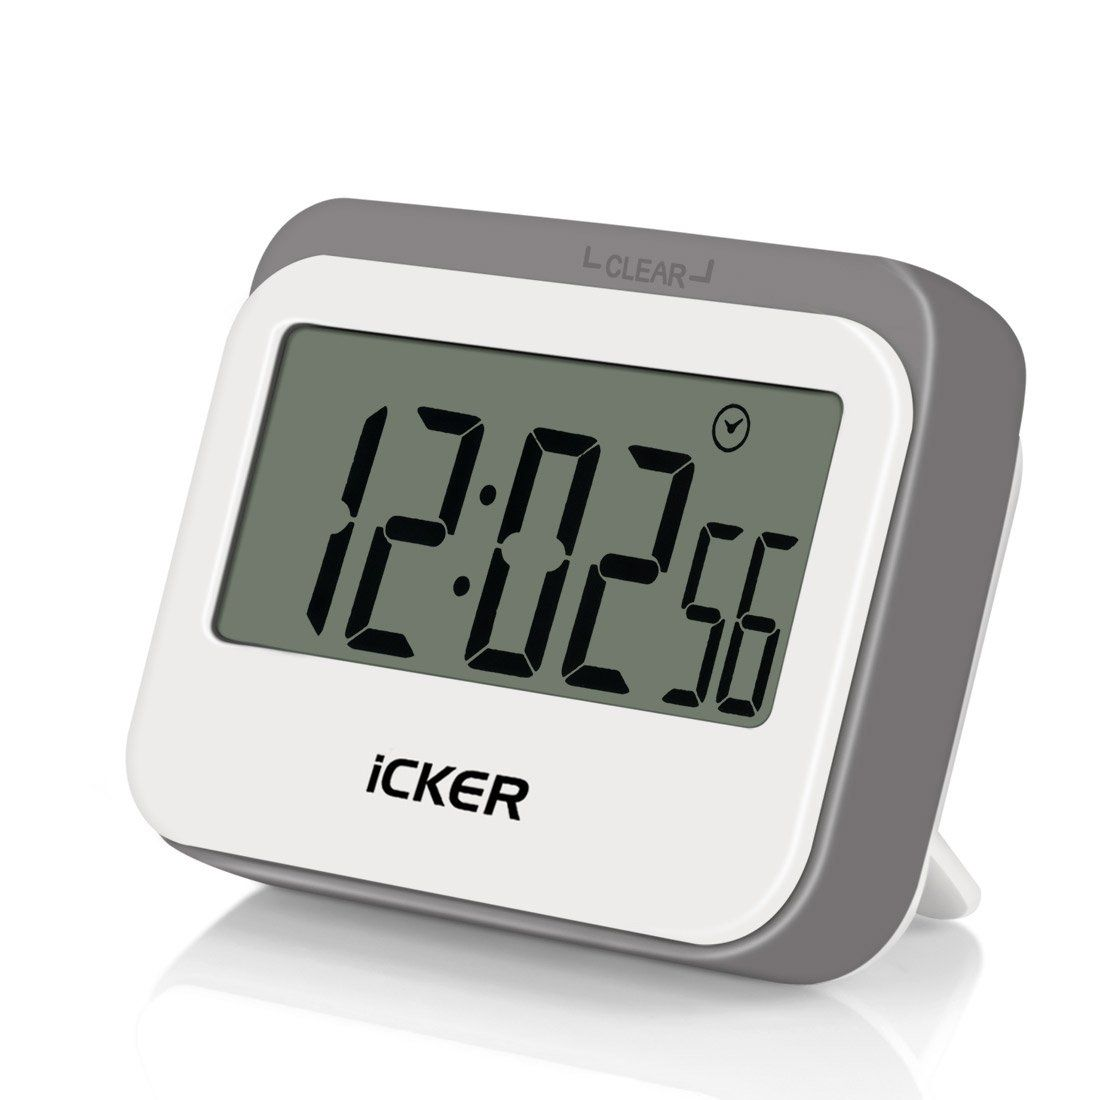 iCKER Digital Kitchen Timer with Large Display, Loud Sounding Alarm ...